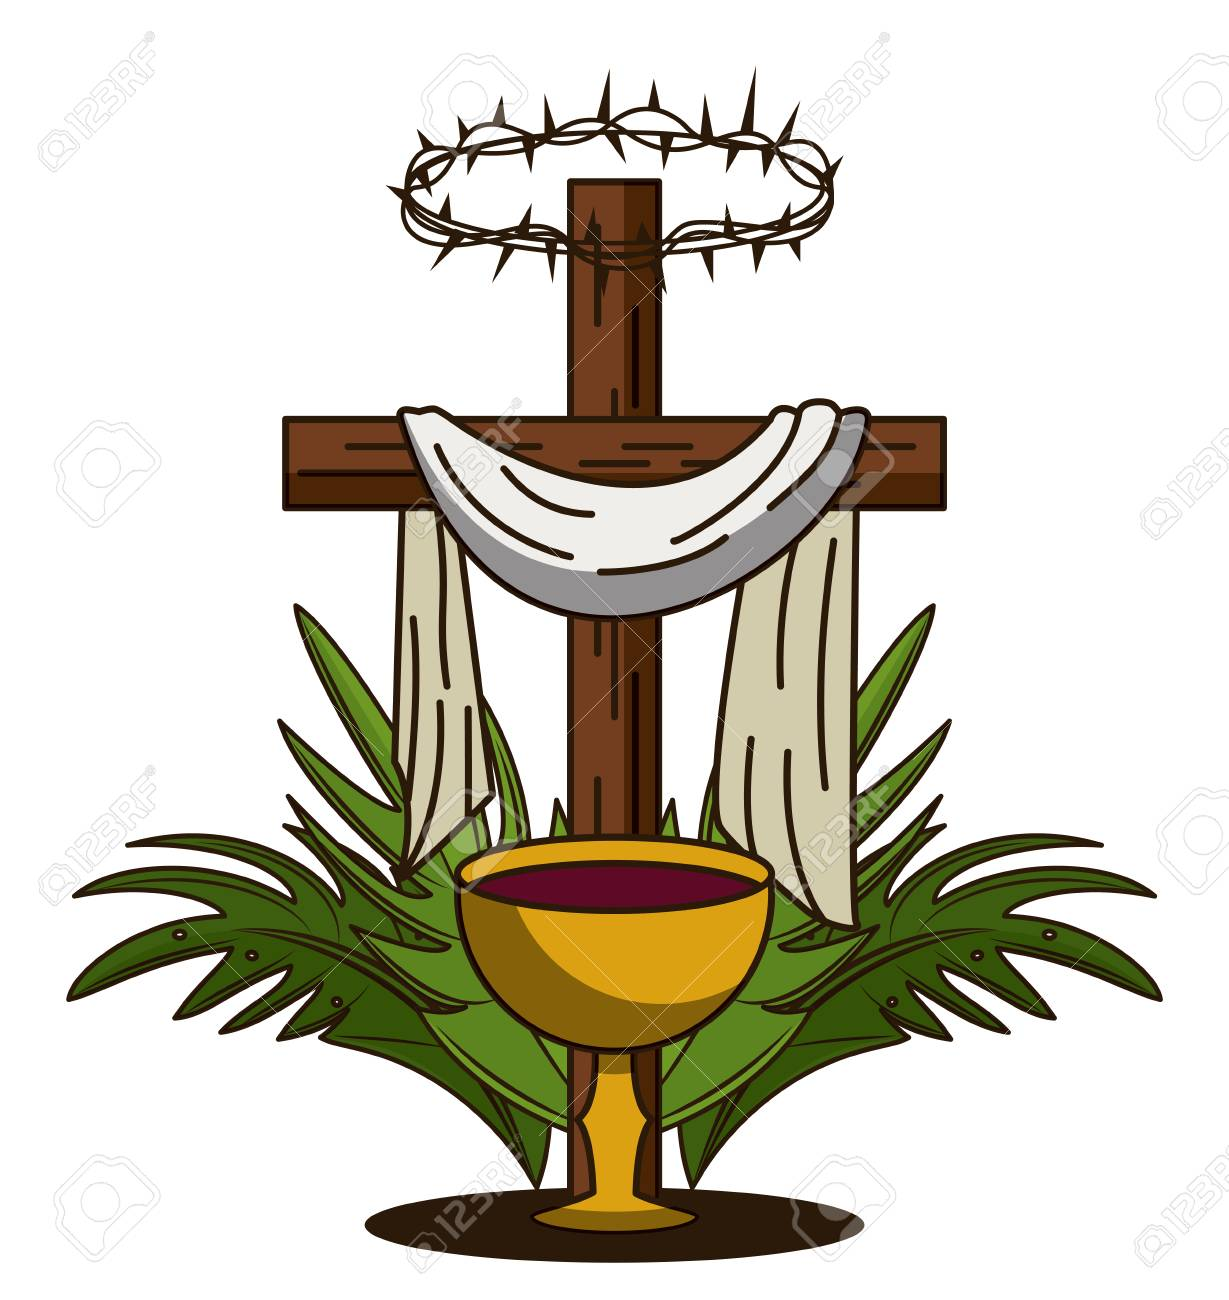 Holy week catholic tradition icon vector illustration graphic...